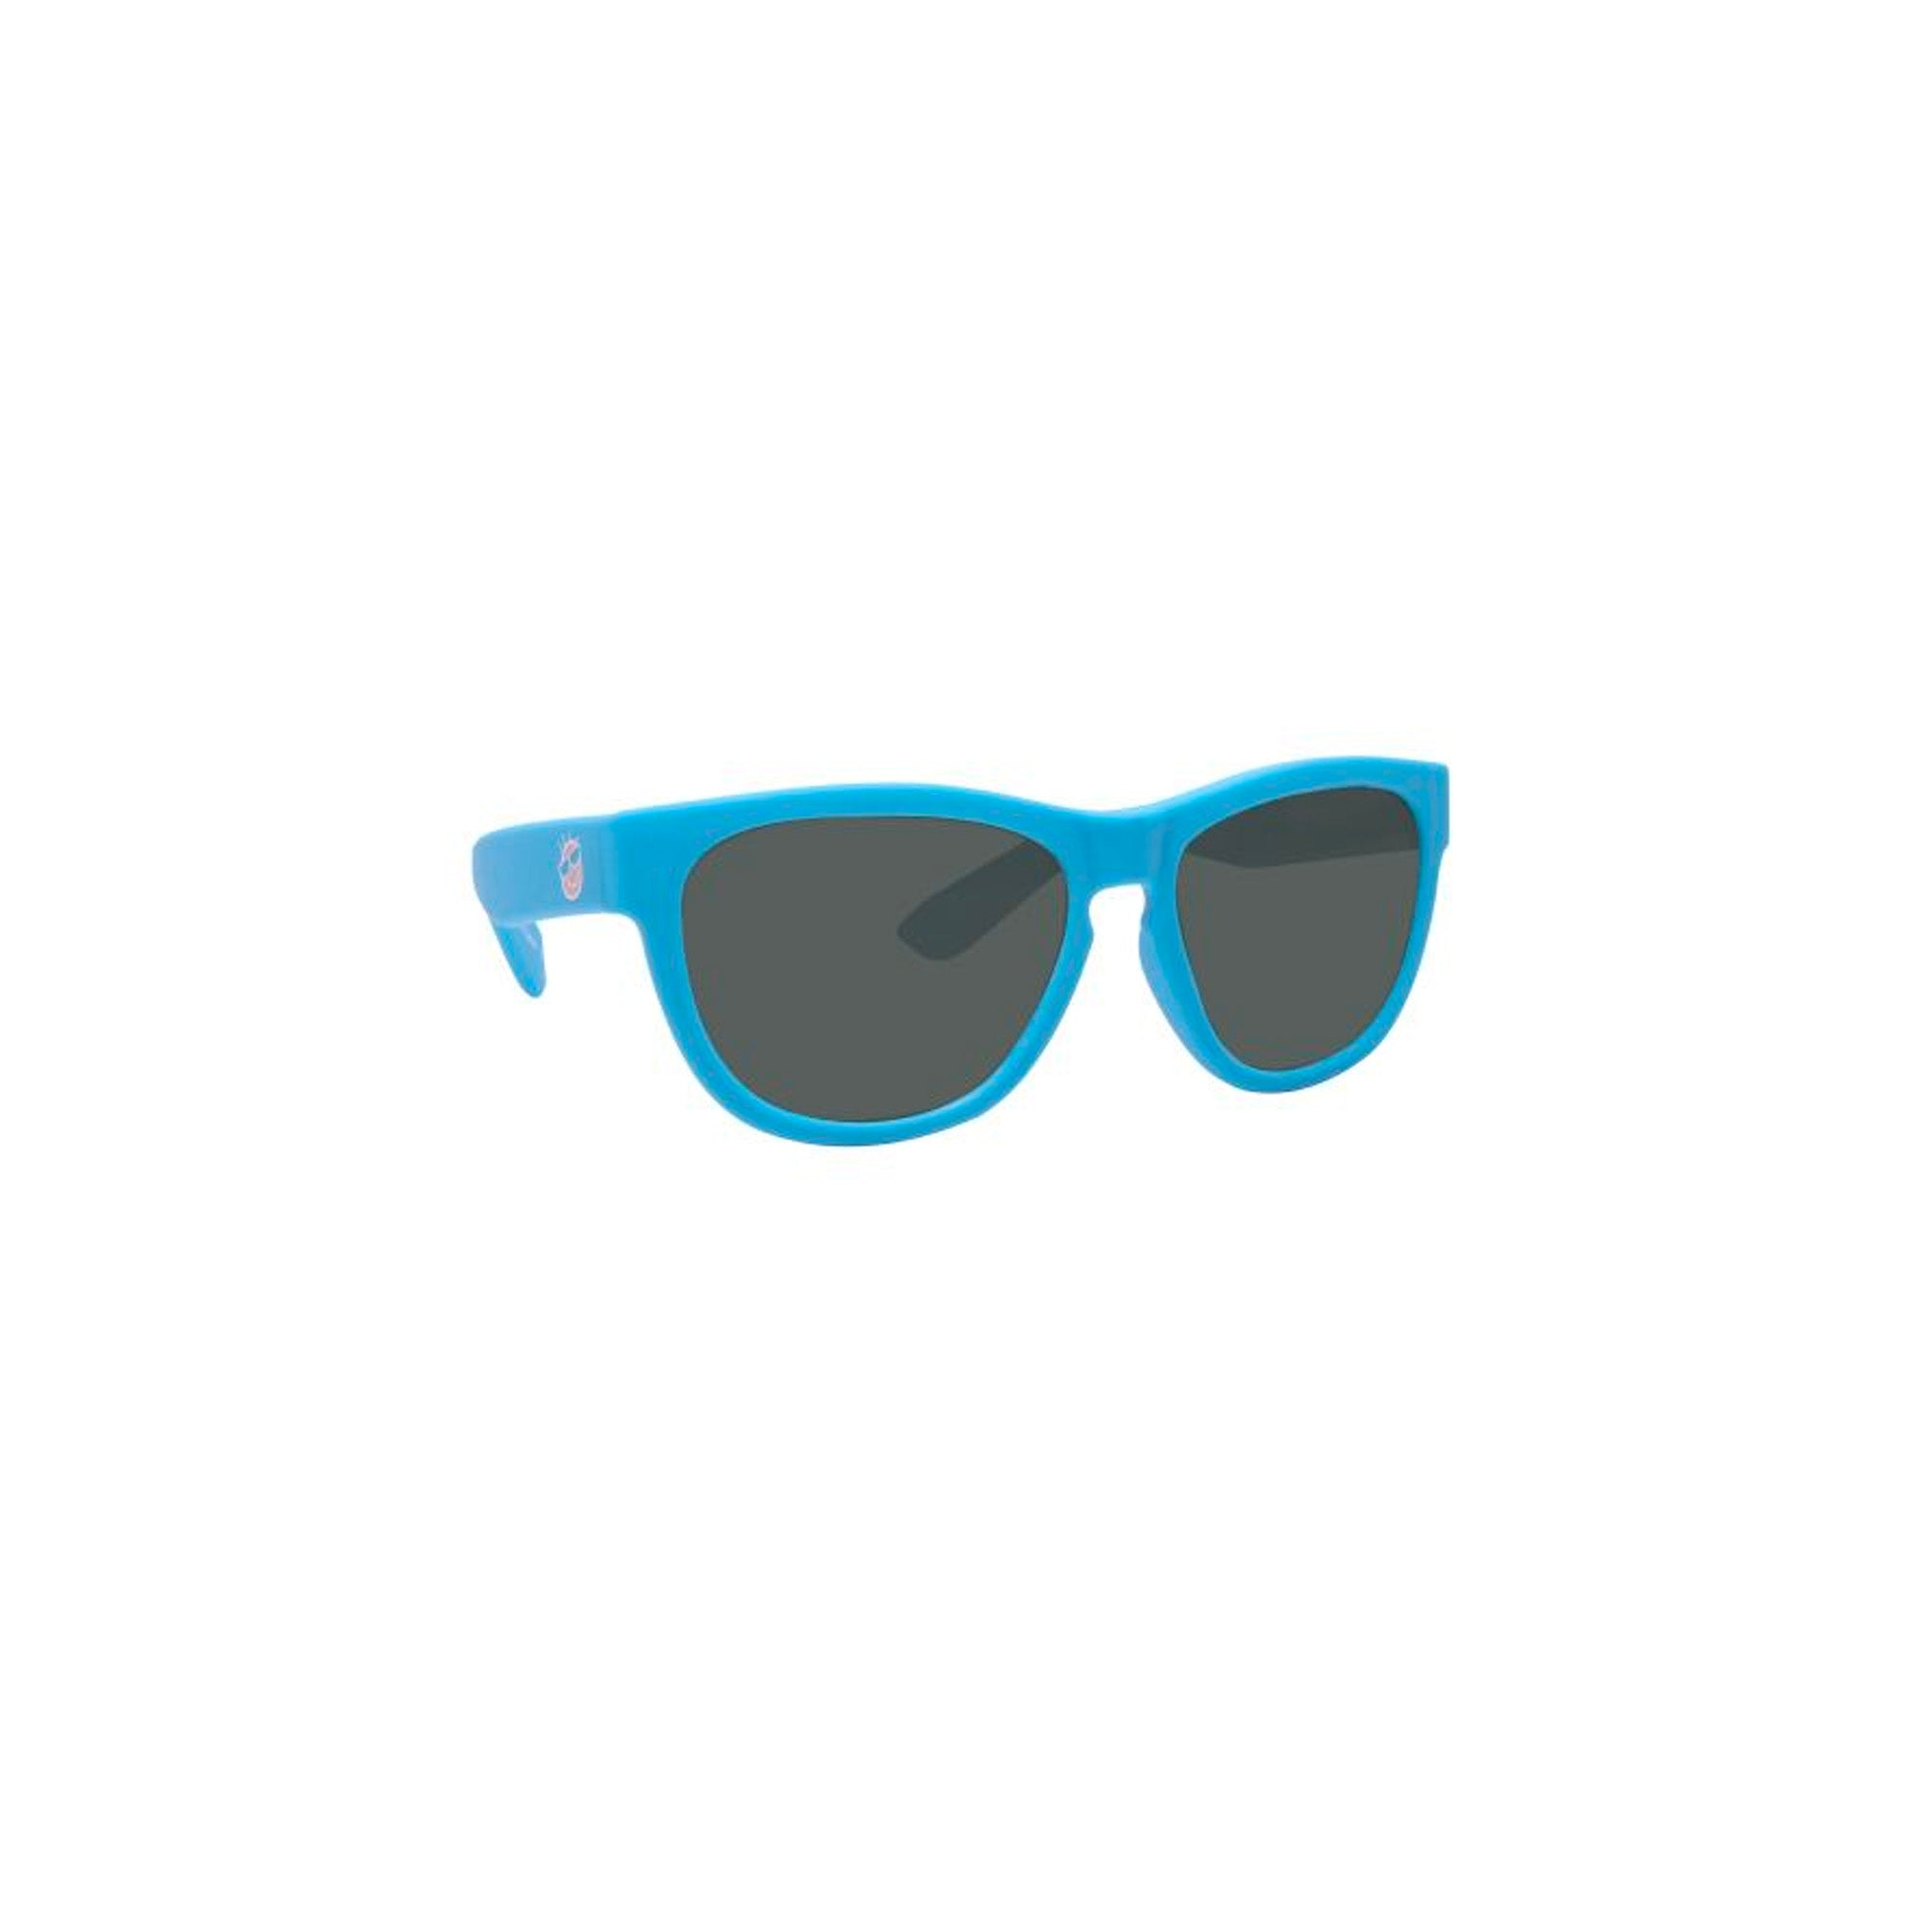 Mini Shades Classic Kid's Polarized Sunglasses (Ages 0-3) - Baby Blue